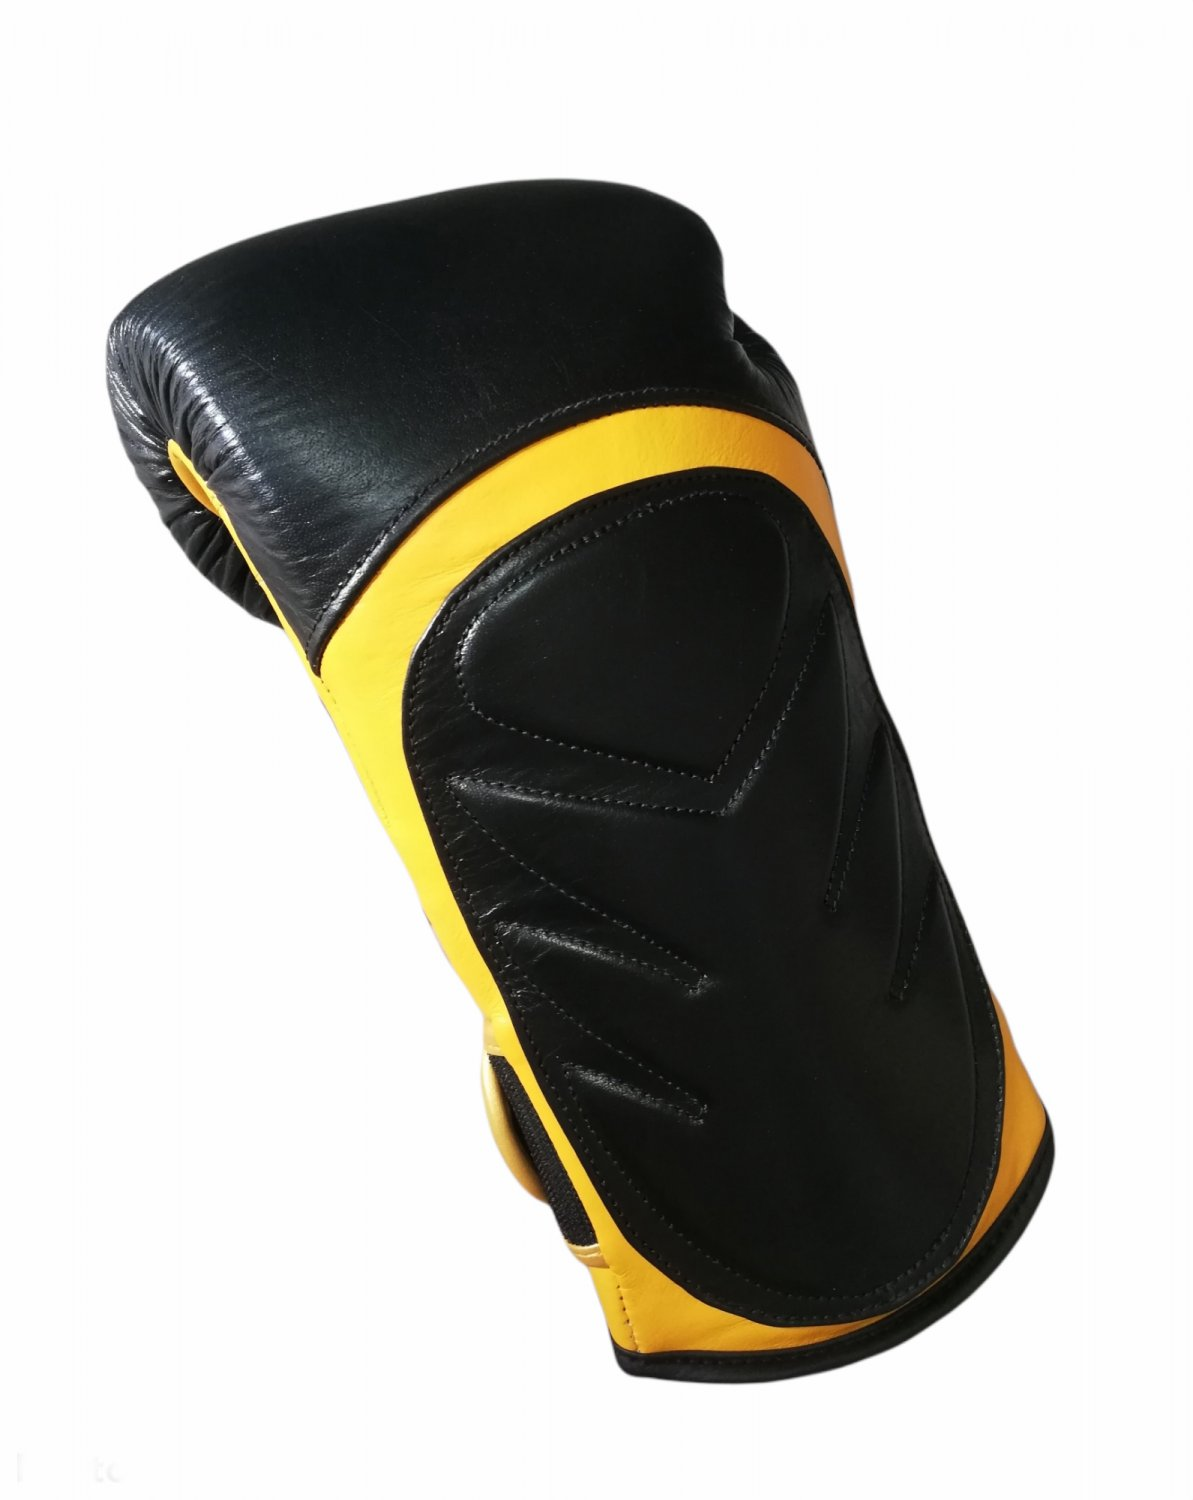 Twins Design Custom Made Logo Boxing Real Leather Gloves